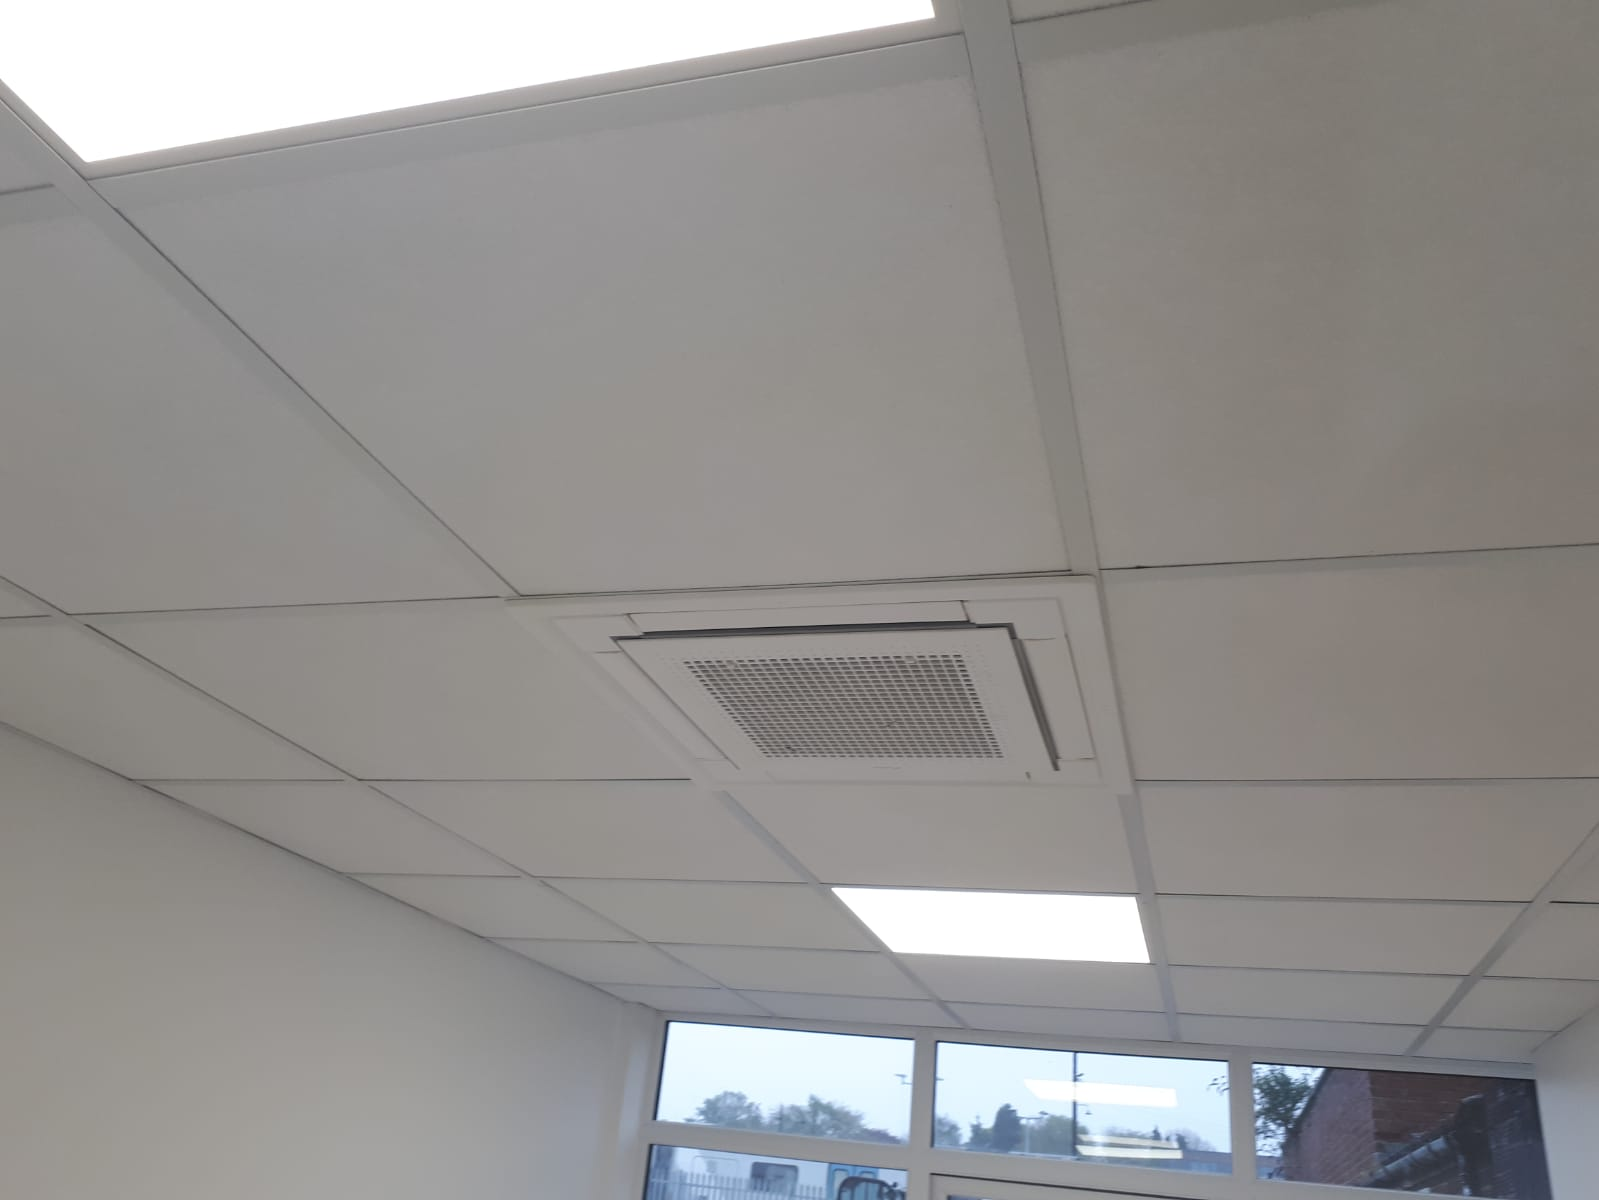 Ventilation grill in ceiling